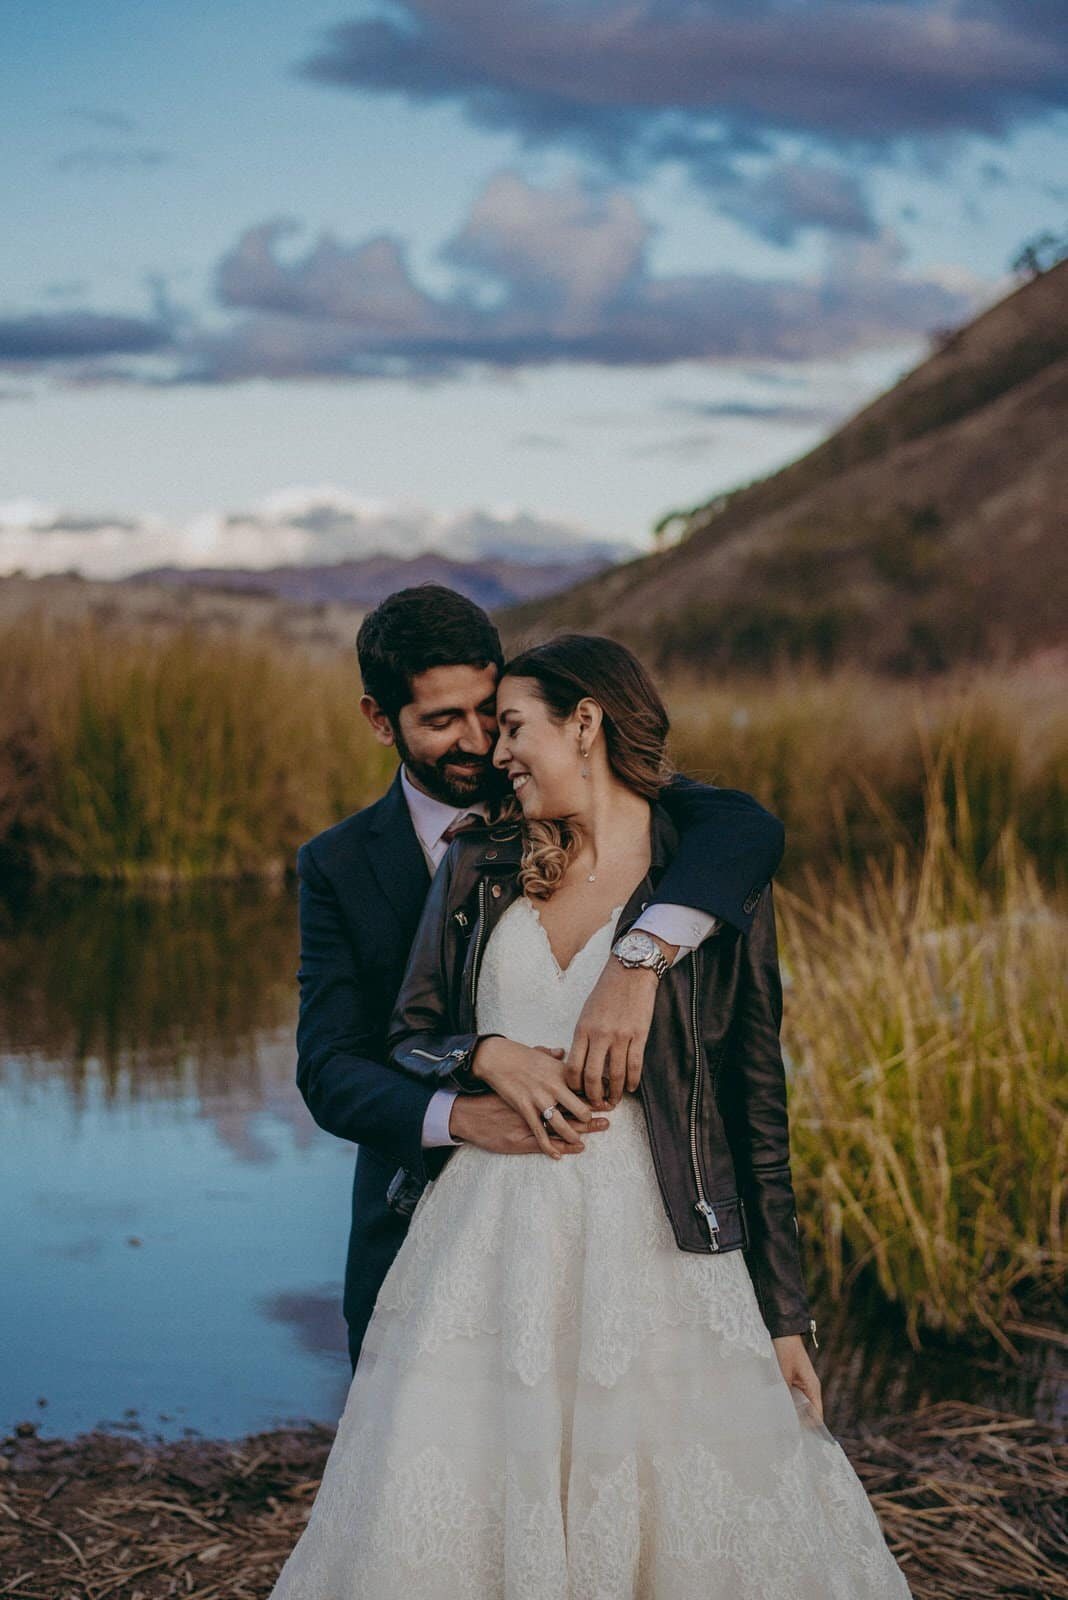 Wedding photography in peru